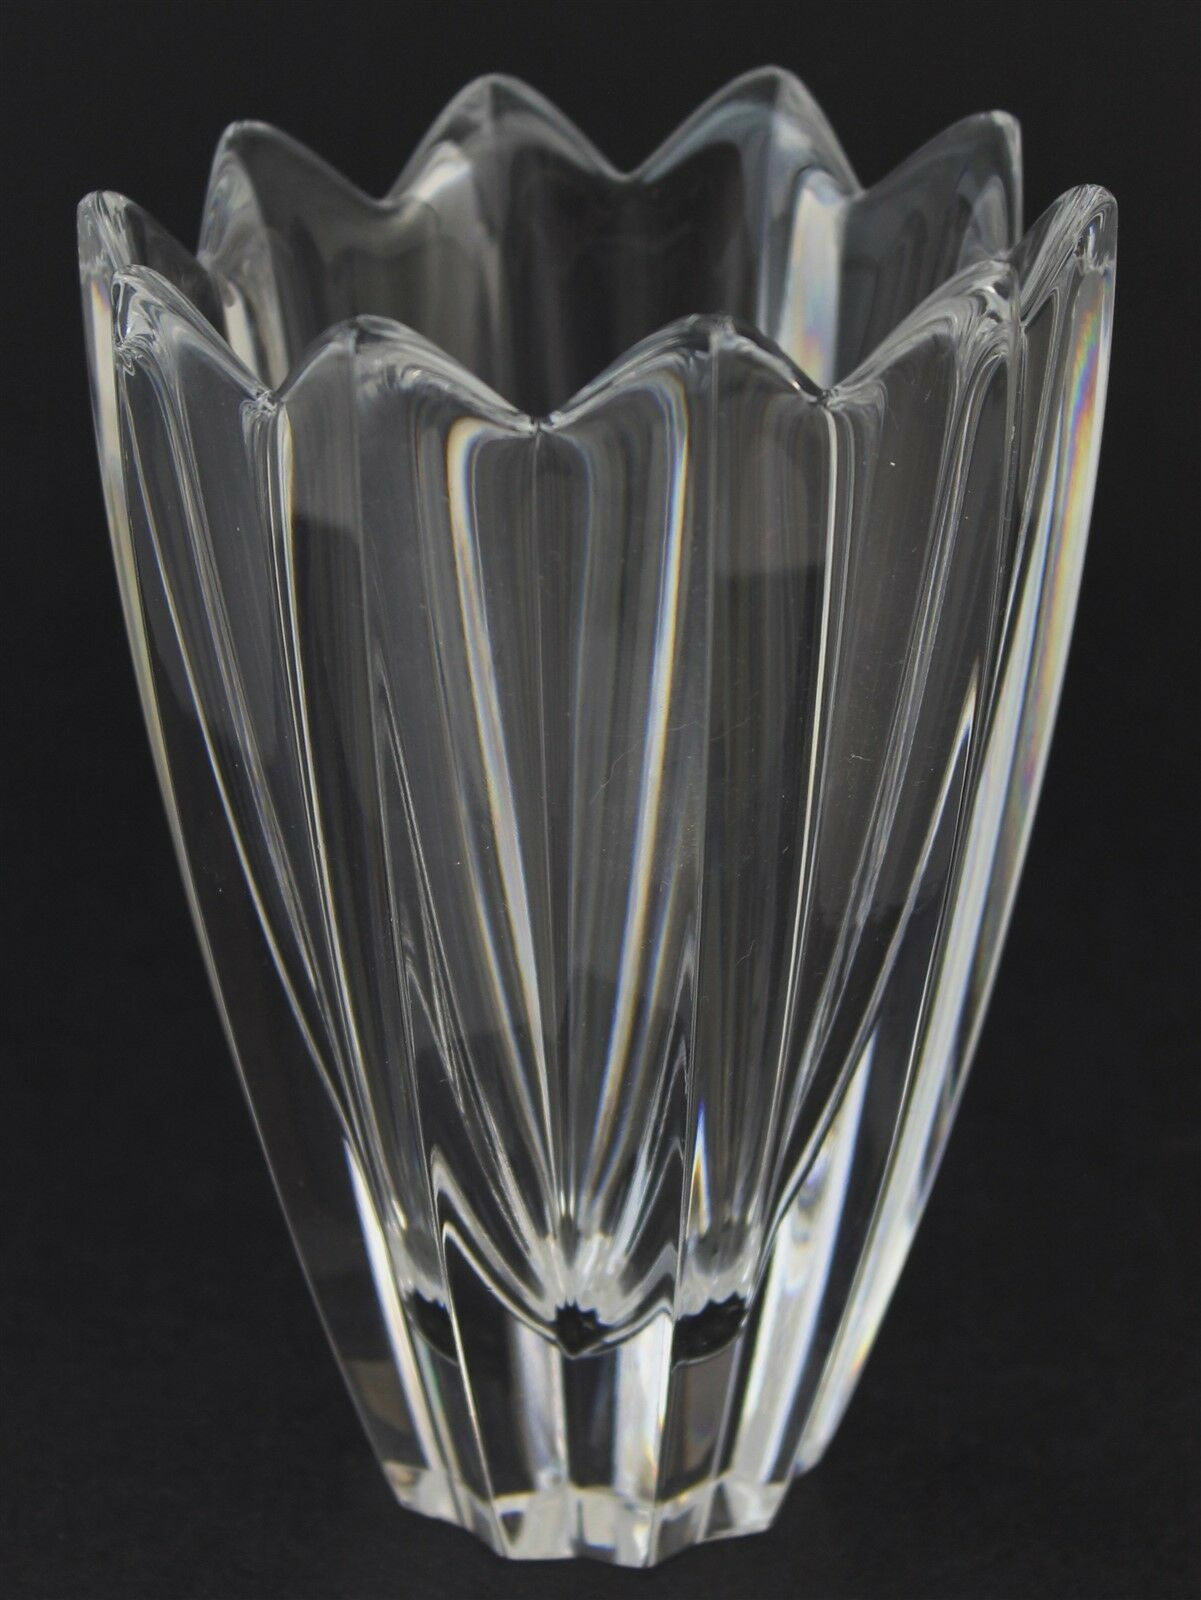 vintage signed orrefors fleur jan johansson design cut glass floral crystal vase ebay. Black Bedroom Furniture Sets. Home Design Ideas